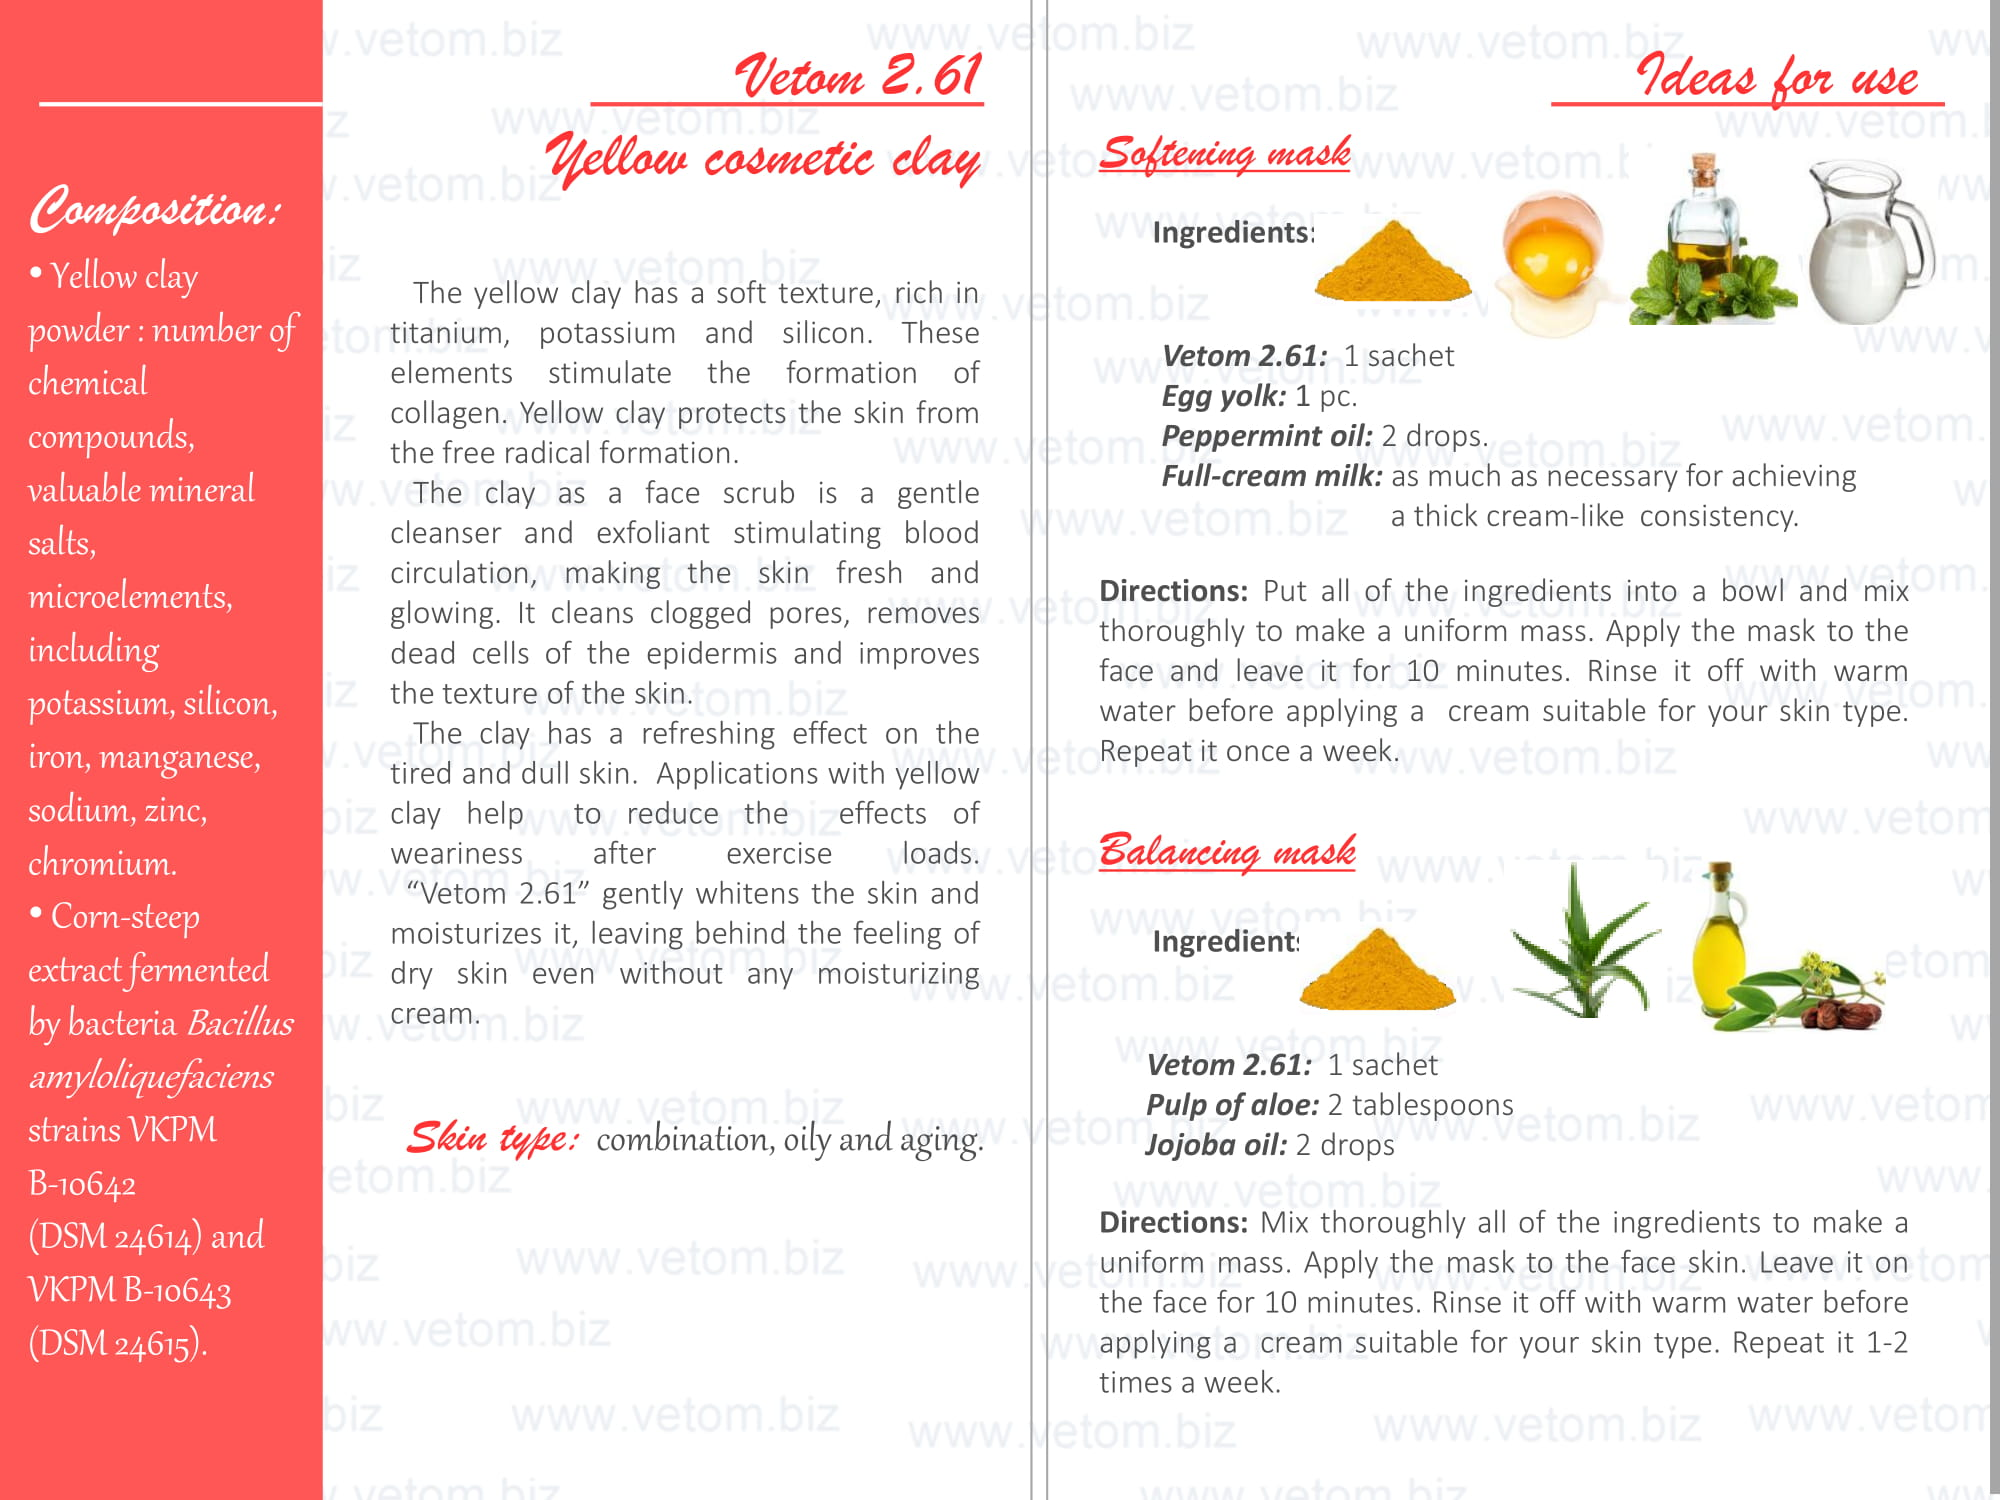 Vetom 2.61 - Yellow cosmetic clay for combination, oily and aging skin types. Ideas for use: Softening mask, Balancing mask.